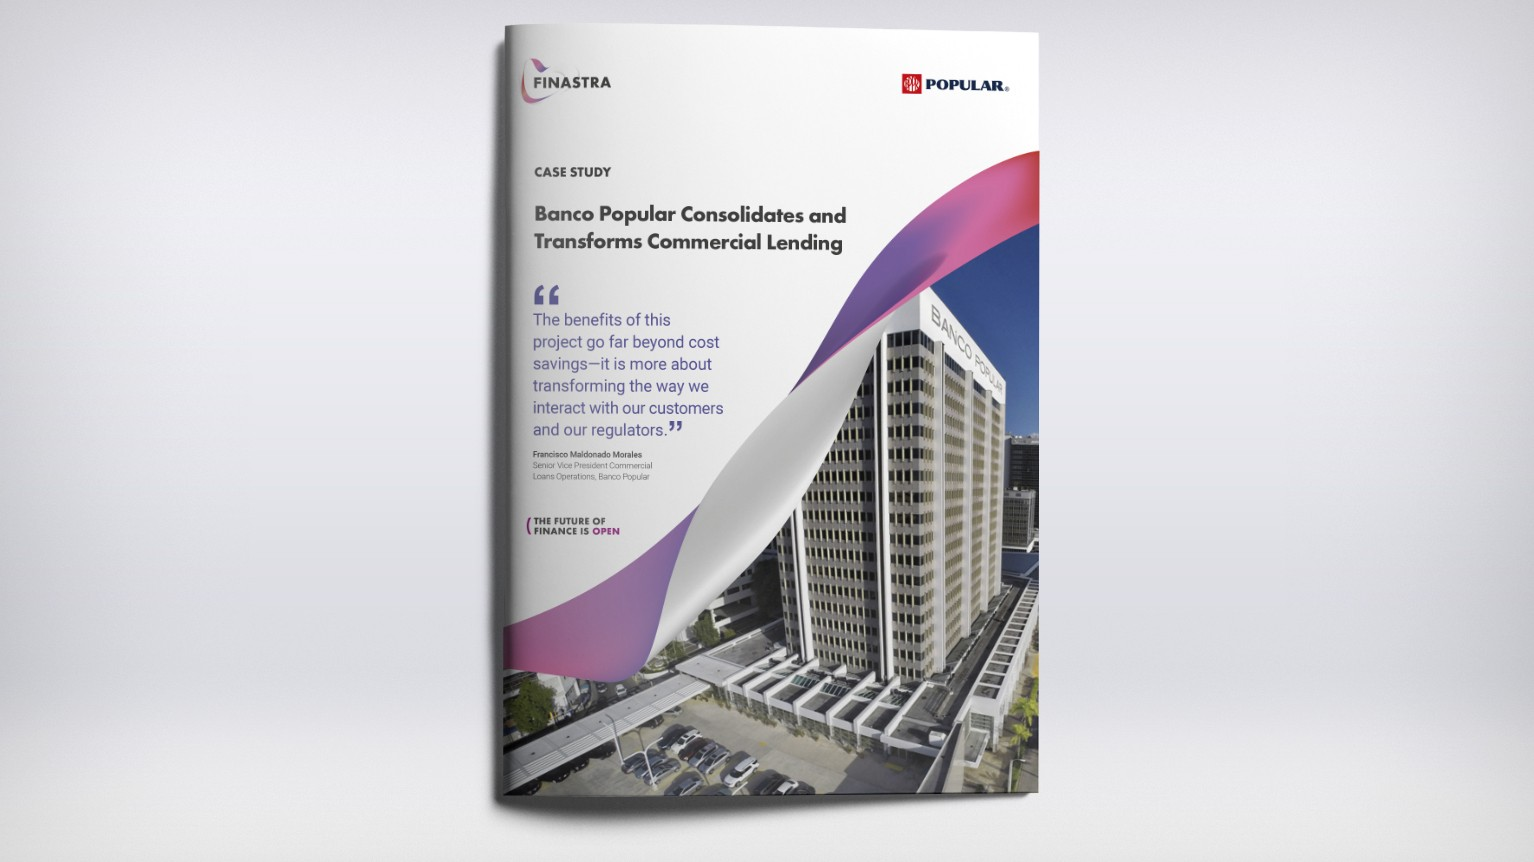 Banco Popular Consolidates and Transforms Commercial Lending